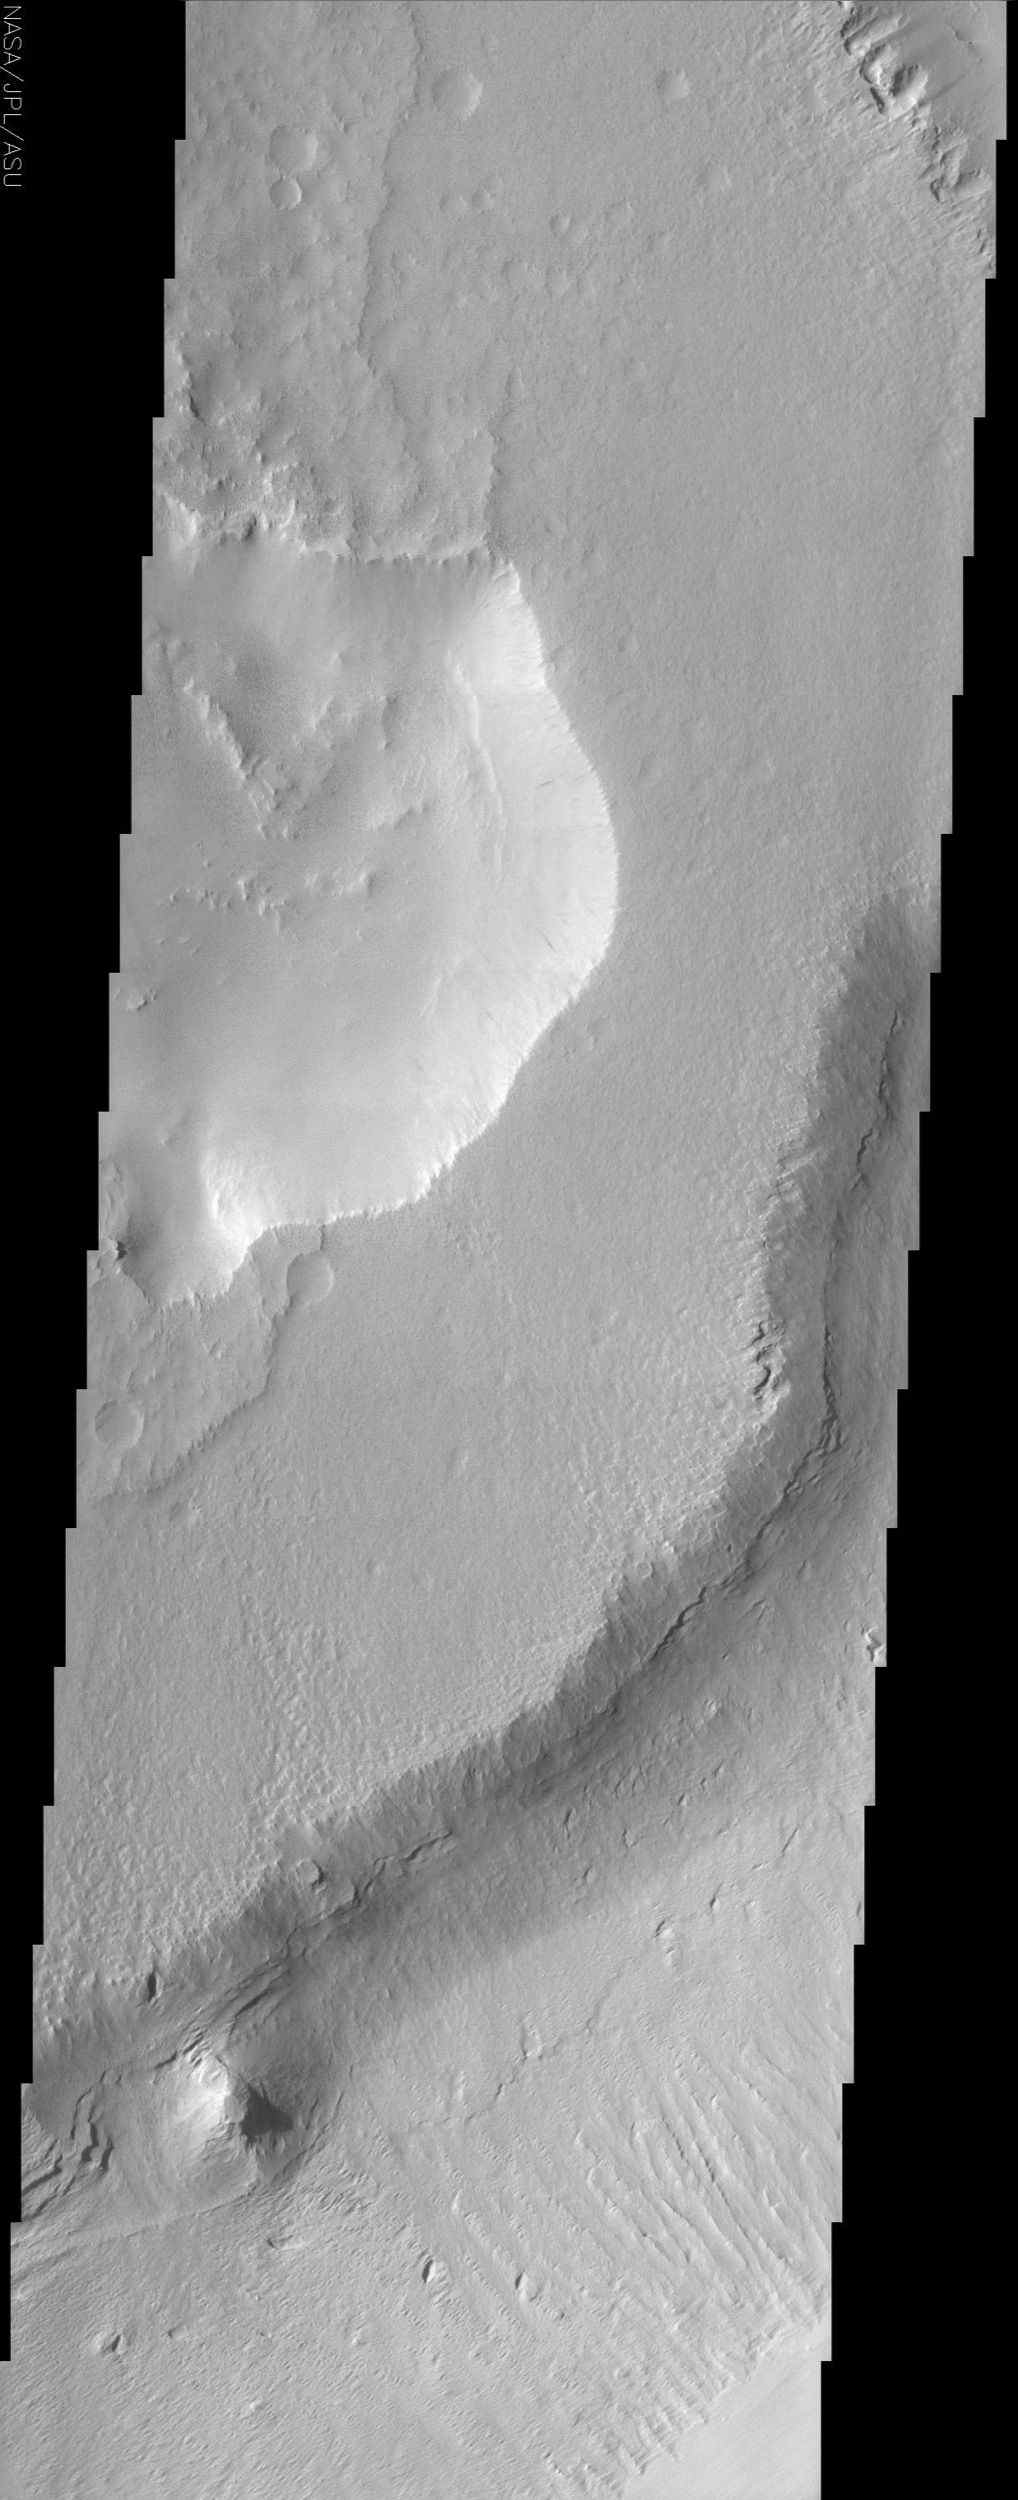 This image from NASA's Mars Odyssey shows a sample of the middle member of the Medusae Fossae formation. The layers exposed in the southeast-facing scarp suggest that there is a fairly competent unit underlying the mesa in the center of the image.